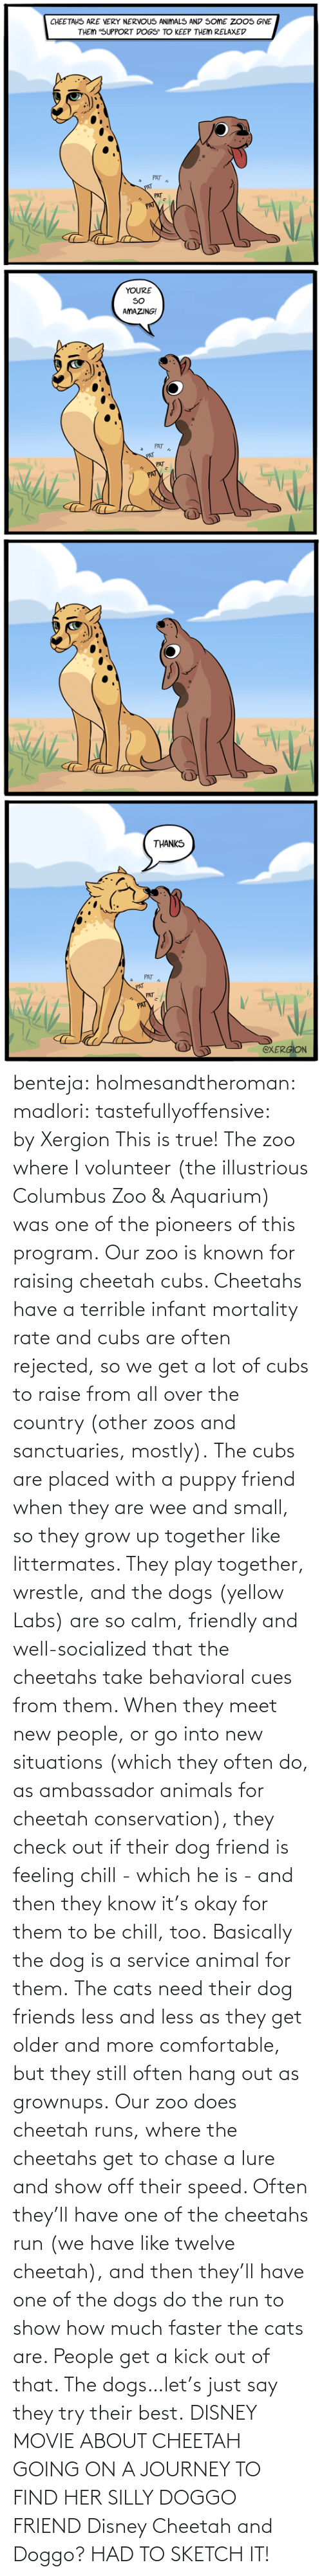 Puppy: benteja:  holmesandtheroman:  madlori:  tastefullyoffensive: by Xergion This is true! The zoo where I volunteer (the illustrious Columbus Zoo & Aquarium) was one of the pioneers of this program. Our zoo is known for raising cheetah cubs. Cheetahs have a terrible infant mortality rate and cubs are often rejected, so we get a lot of cubs to raise from all over the country (other zoos and sanctuaries, mostly). The cubs are placed with a puppy friend when they are wee and small, so they grow up together like littermates. They play together, wrestle, and the dogs (yellow Labs) are so calm, friendly and well-socialized that the cheetahs take behavioral cues from them. When they meet new people, or go into new situations (which they often do, as ambassador animals for cheetah conservation), they check out if their dog friend is feeling chill - which he is - and then they know it's okay for them to be chill, too. Basically the dog is a service animal for them. The cats need their dog friends less and less as they get older and more comfortable, but they still often hang out as grownups. Our zoo does cheetah runs, where the cheetahs get to chase a lure and show off their speed. Often they'll have one of the cheetahs run (we have like twelve cheetah), and then they'll have one of the dogs do the run to show how much faster the cats are. People get a kick out of that. The dogs…let's just say they try their best.   DISNEY MOVIE ABOUT CHEETAH GOING ON A JOURNEY TO FIND HER SILLY DOGGO FRIEND  Disney Cheetah and Doggo? HAD TO SKETCH IT!